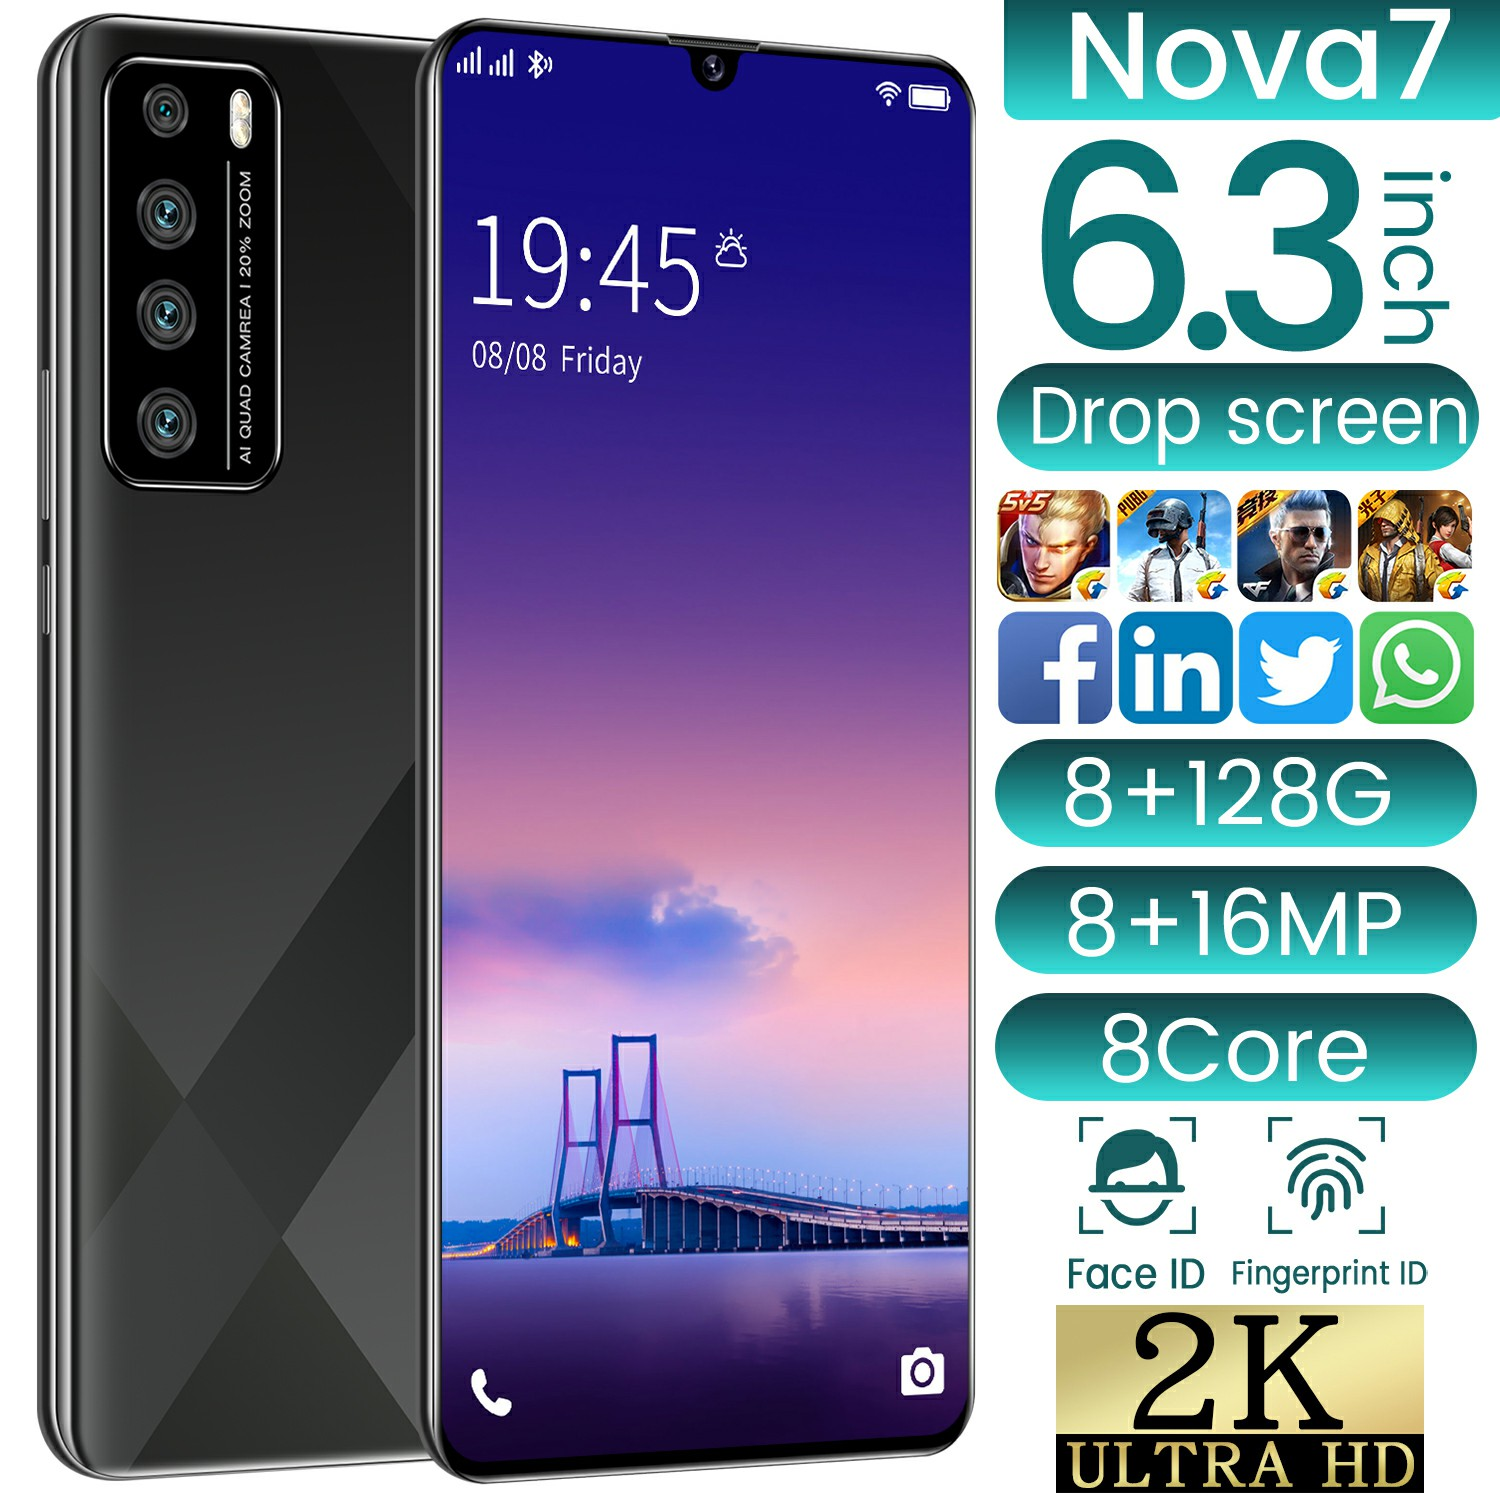 wholesale cheap smart phone nova7 android mobile phone Quad core Gradient body Factory Outlet oem low price china phone